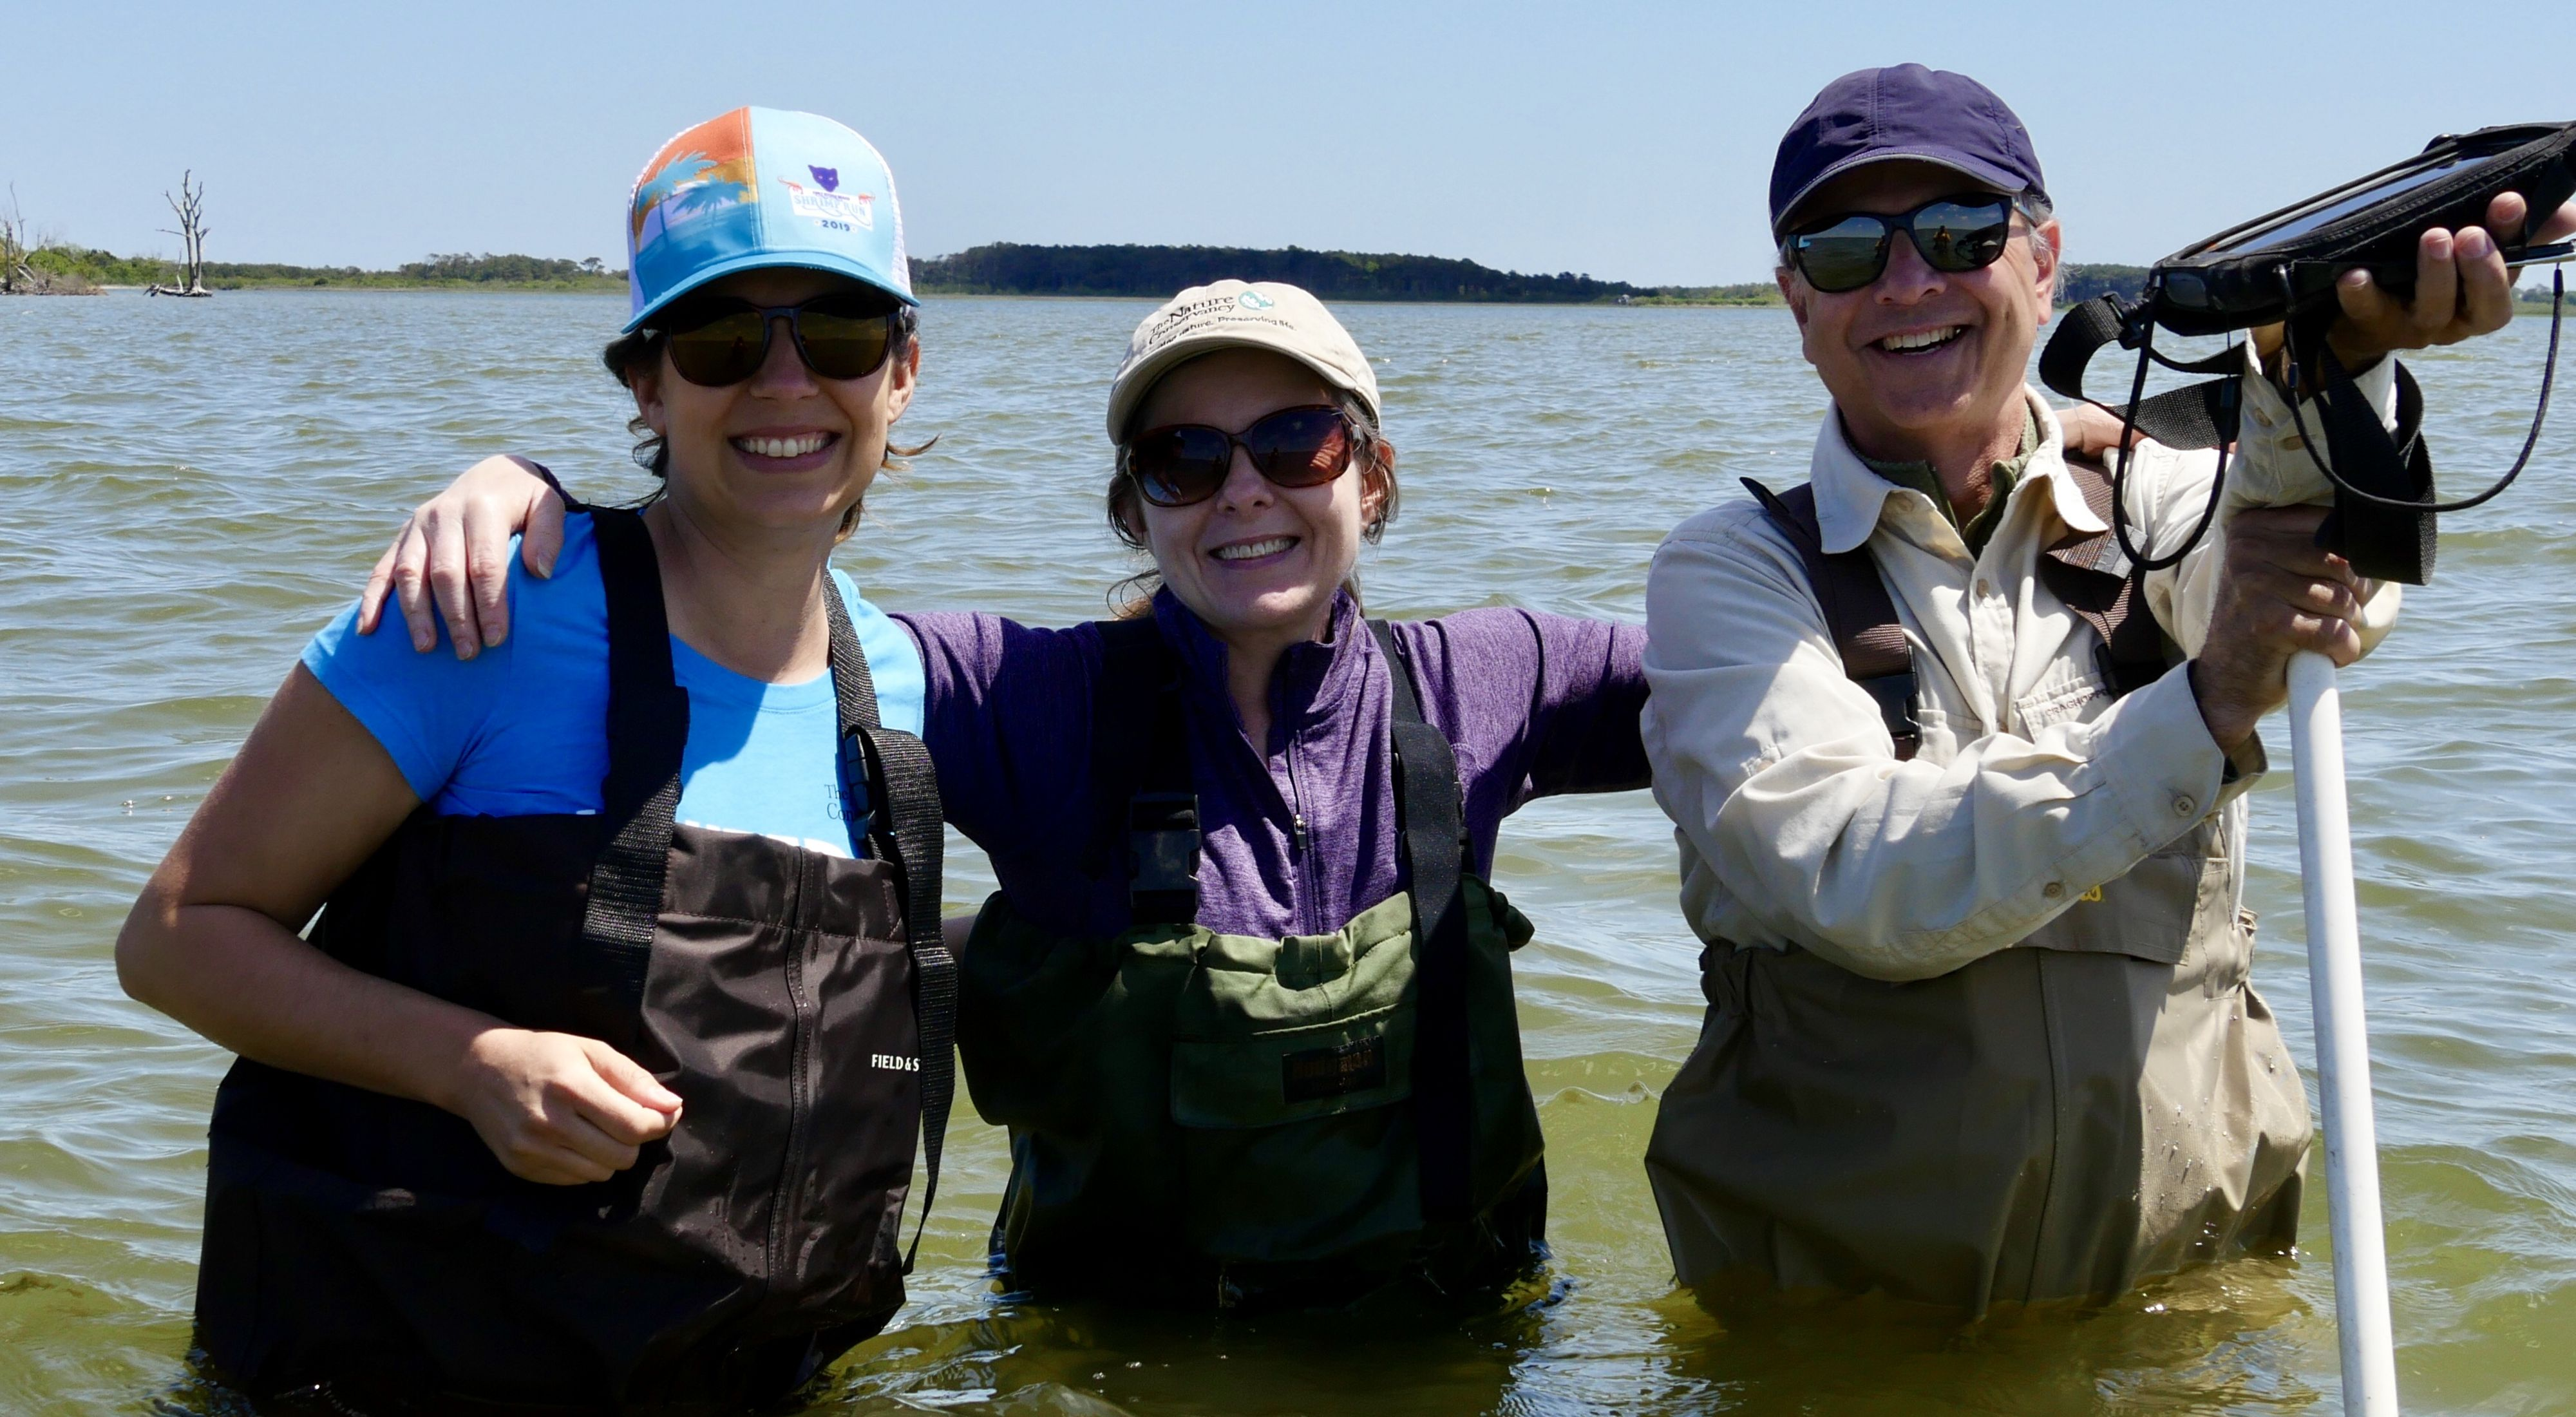 Maryland staff during a successful eelgrass monitoring trip in Sinepuxent Bay off of Assateague National Seashore, Maryland.